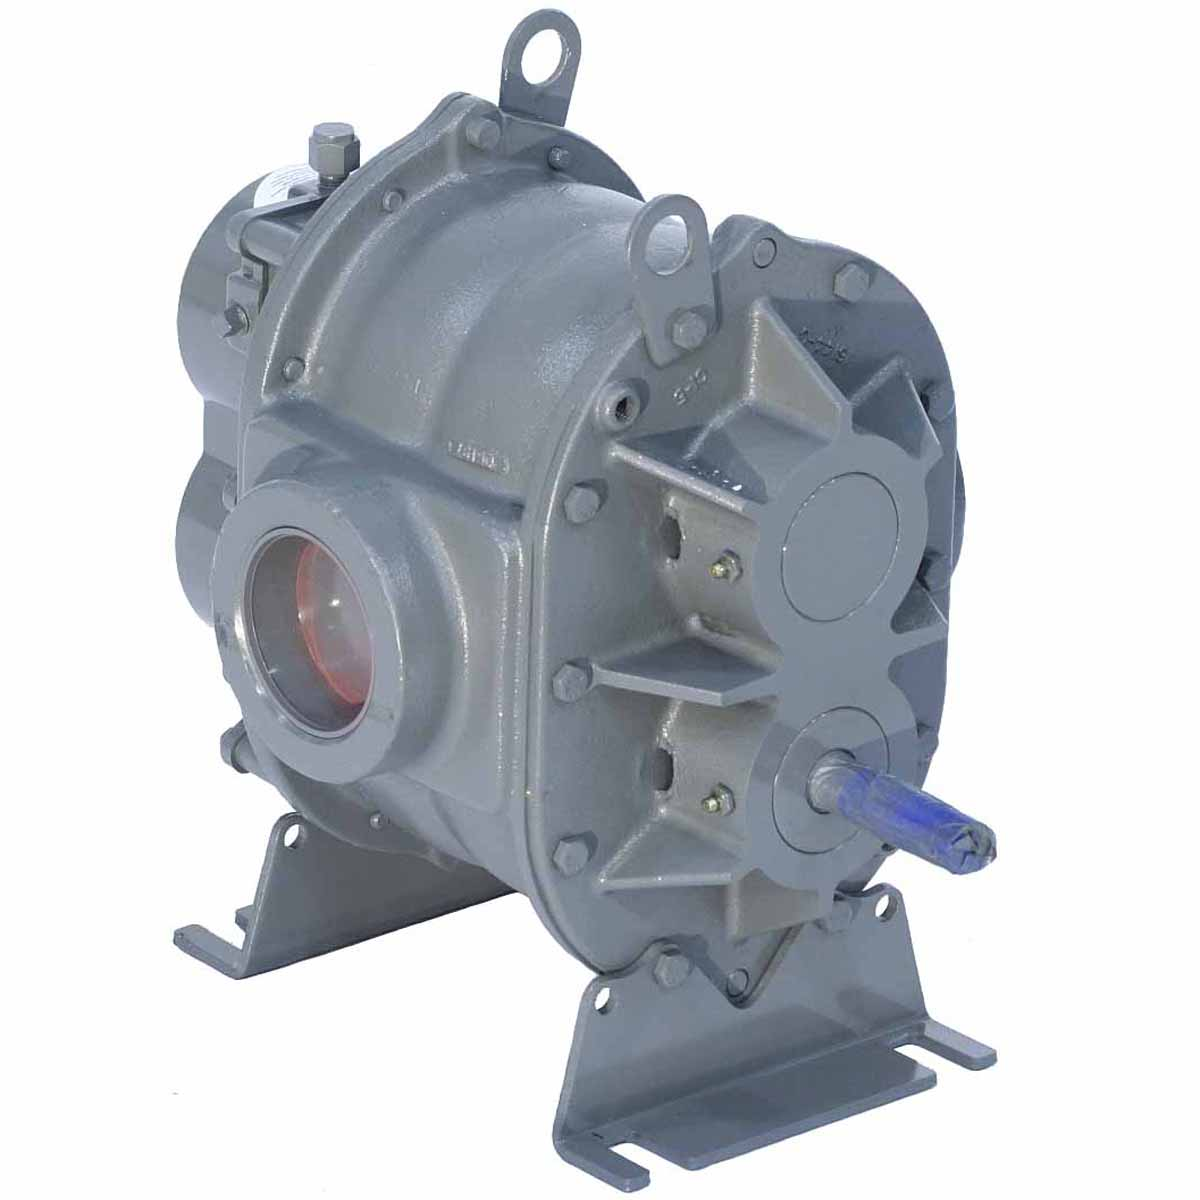 Universal RAI-J™ Blowers